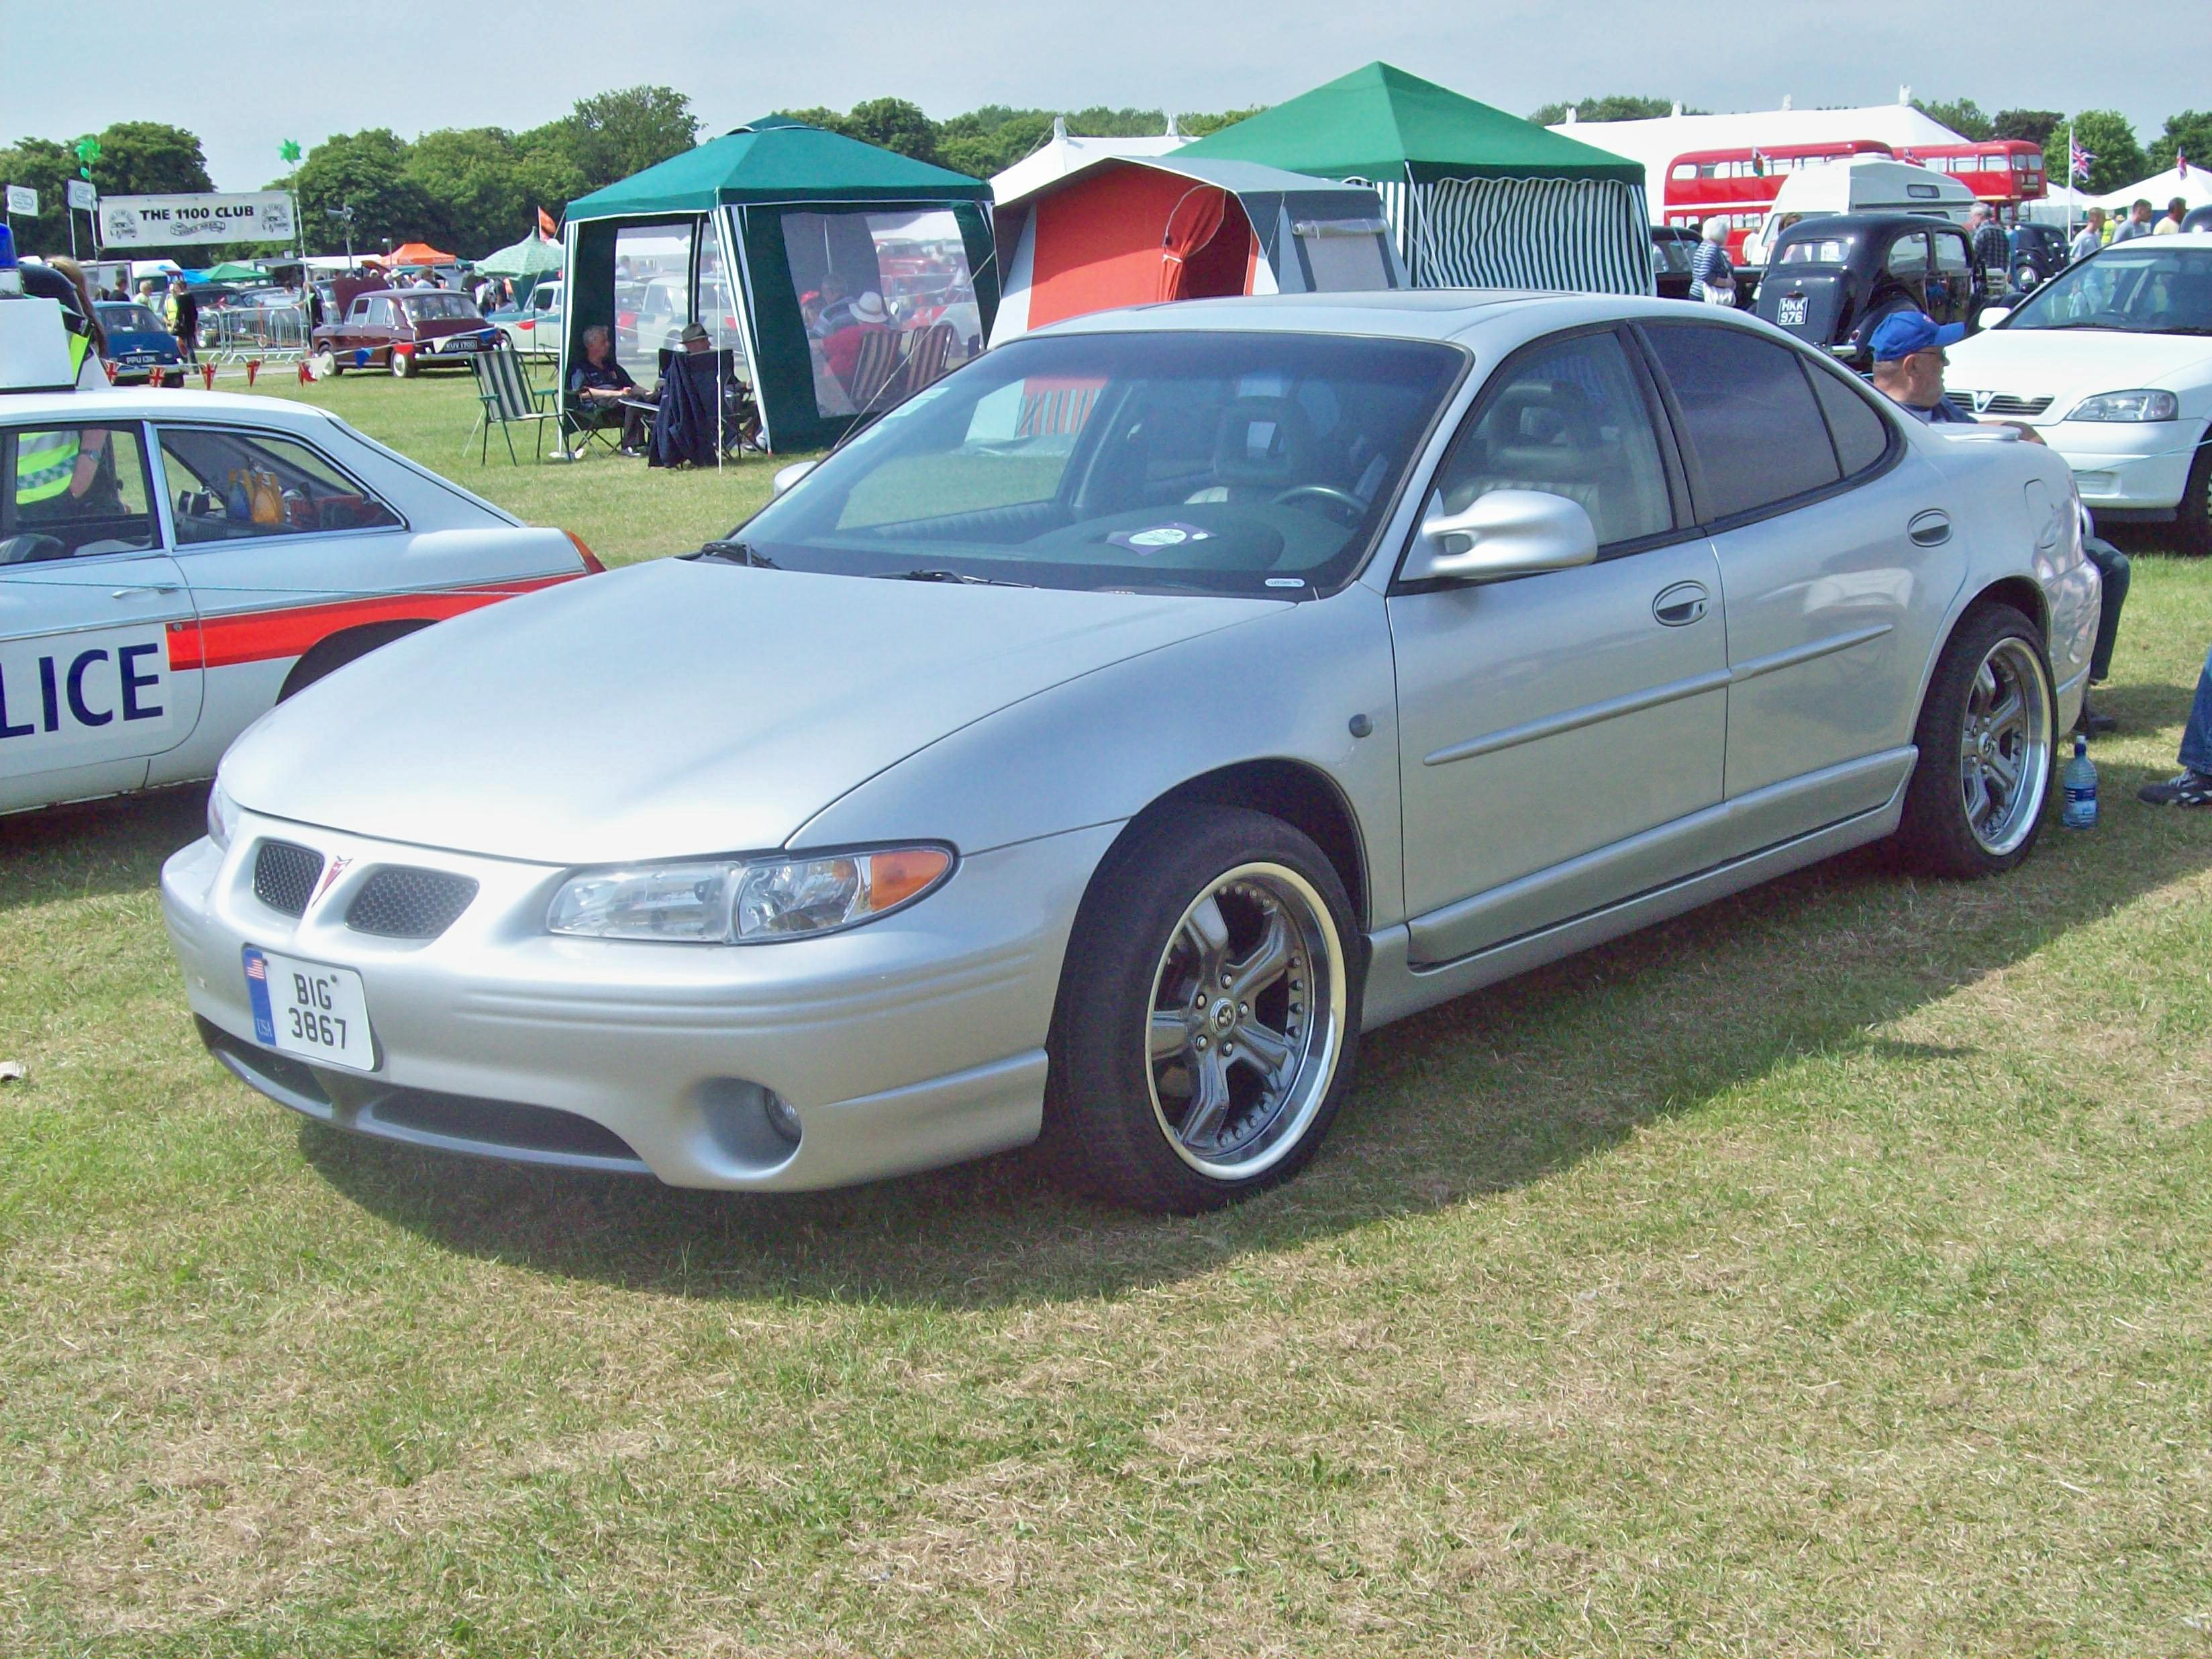 128 Pontiac Grand Prix GTP (1997-03) ?? | Flickr - Photo Sharing!